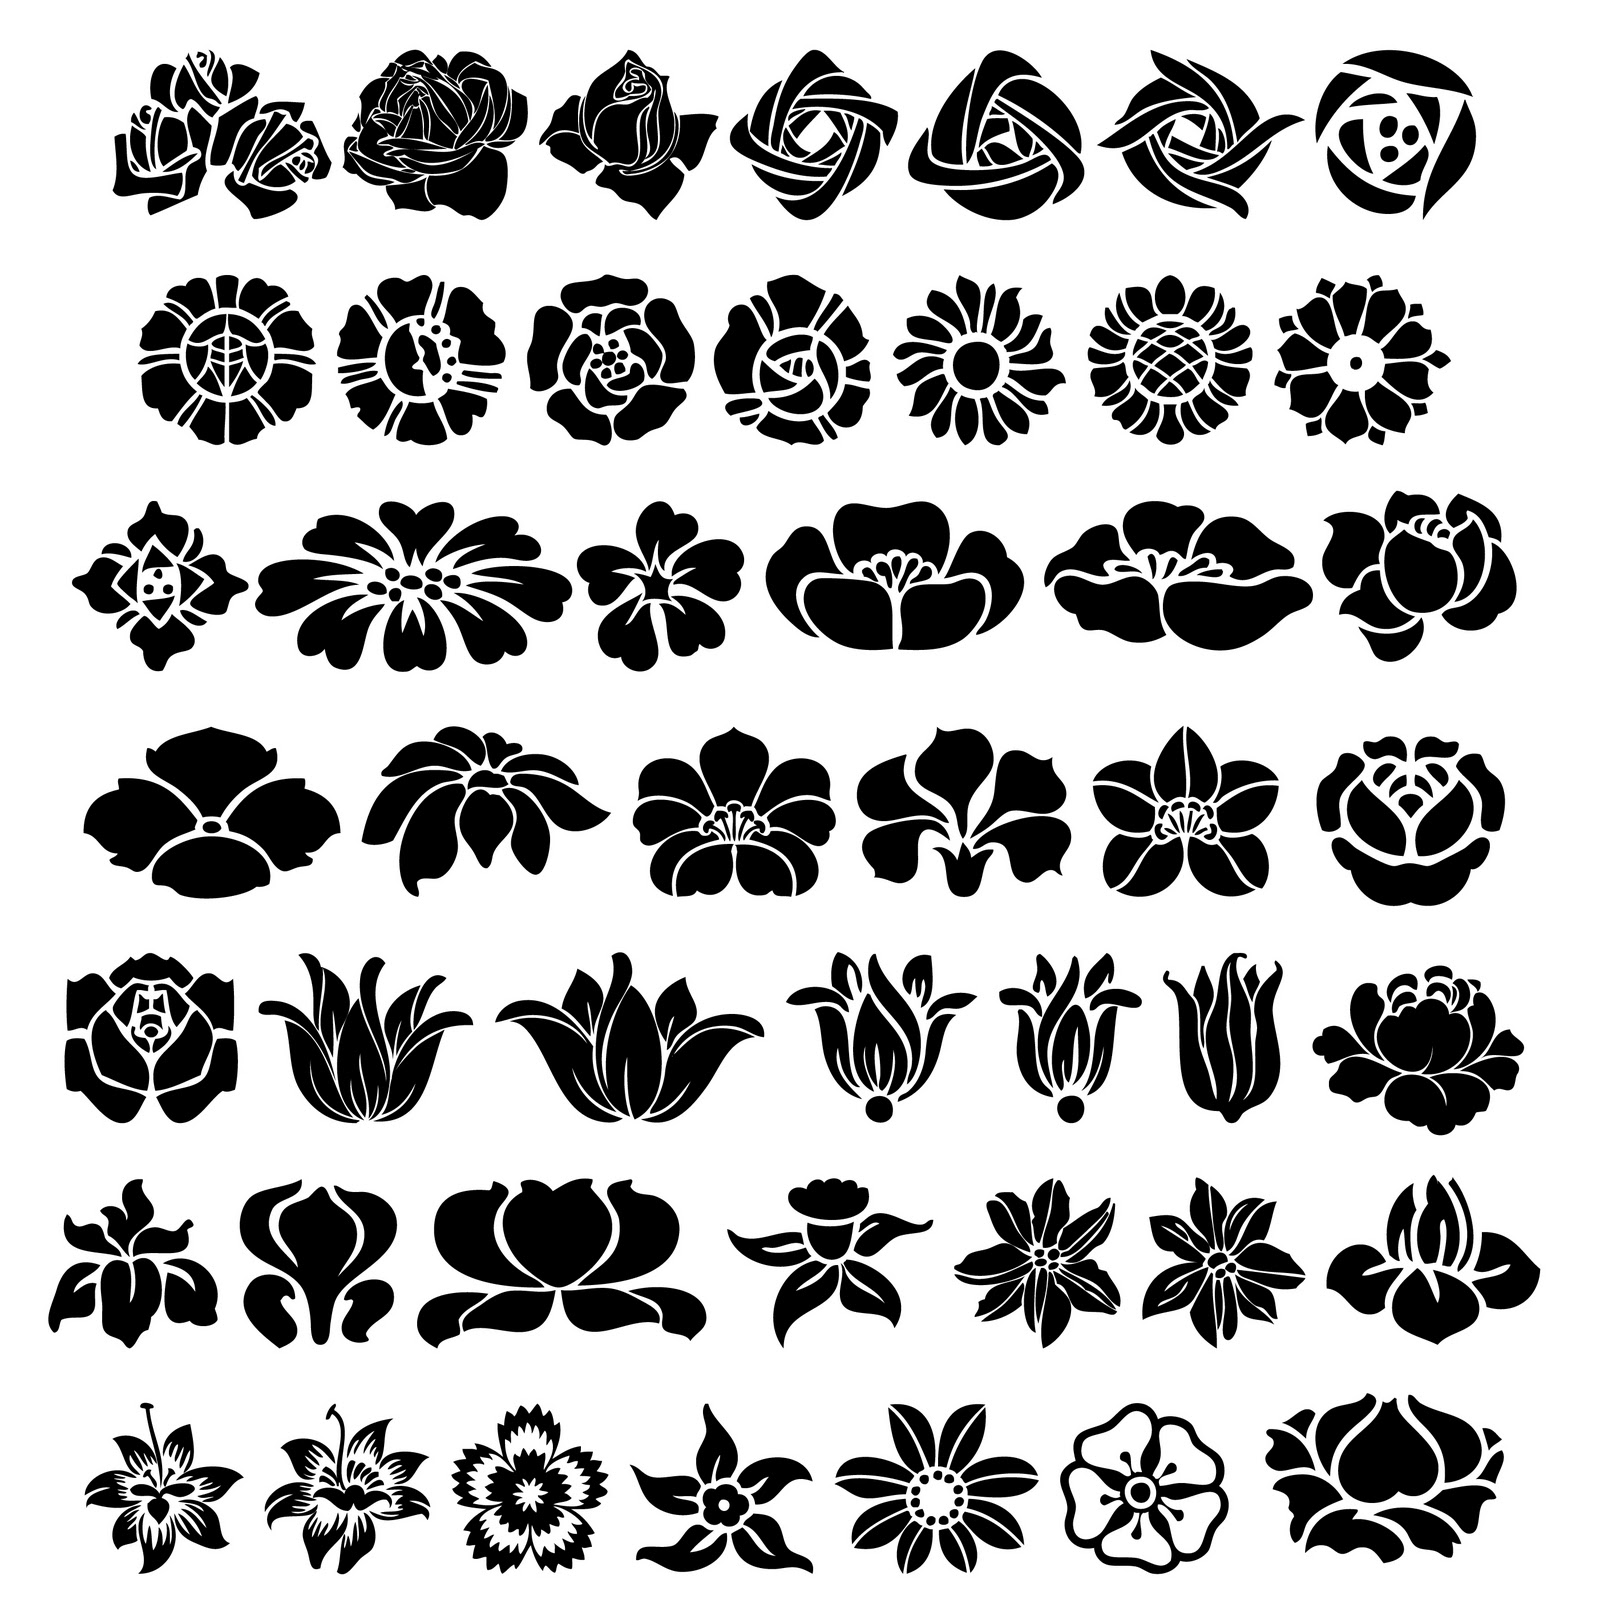 Free printable flower stencils for walls gallery home wall free printable flower stencils for walls gallery home wall free printable flower stencils for walls choice amipublicfo Gallery